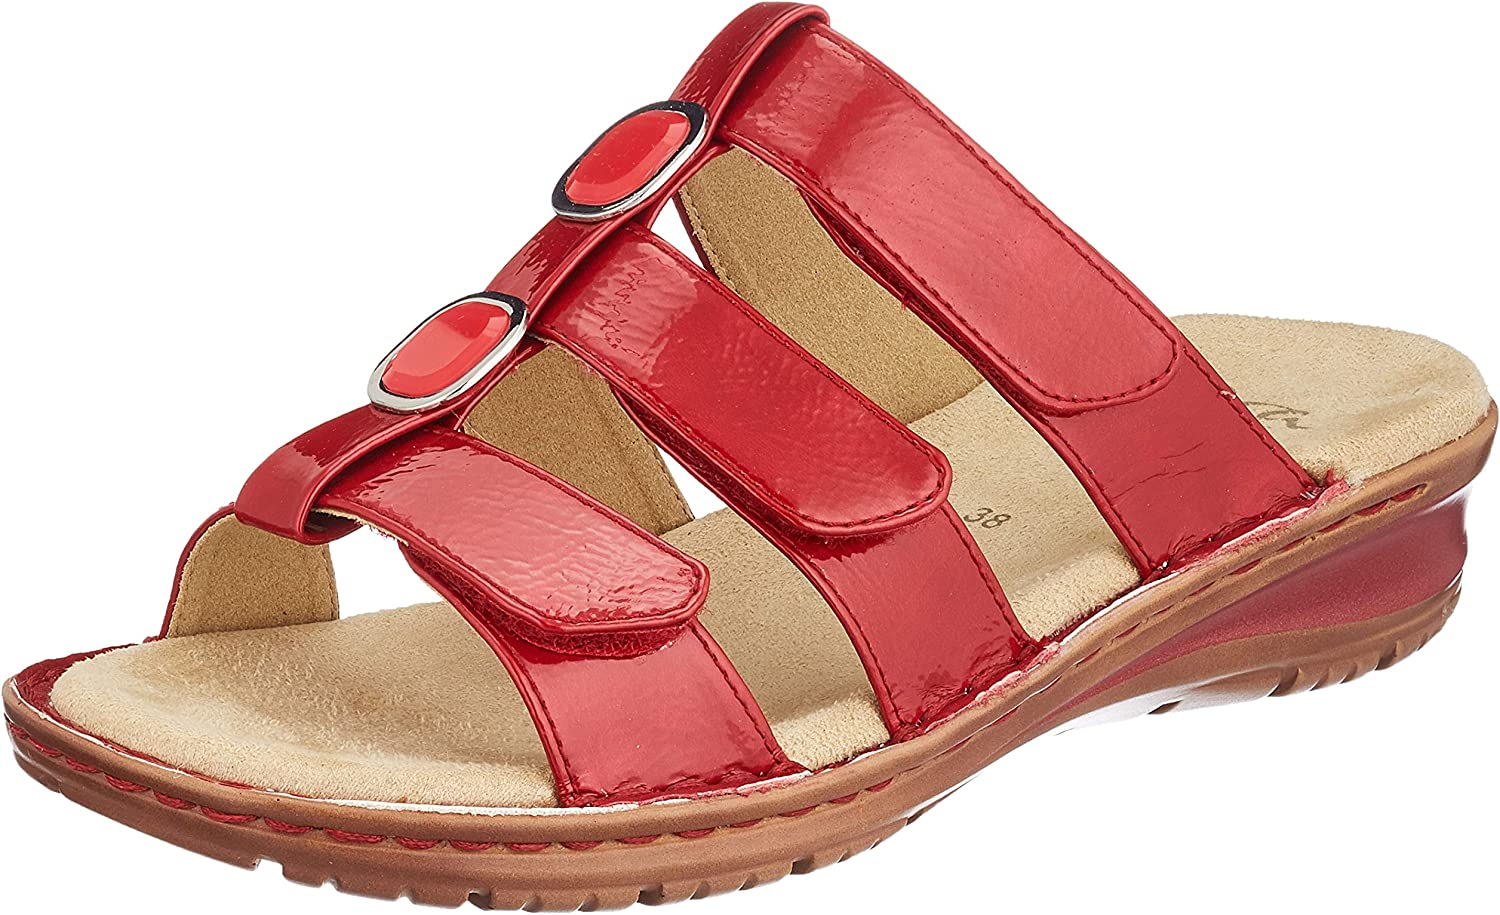 ARA Sales of SALE items from Max 84% OFF new works Women's Mules